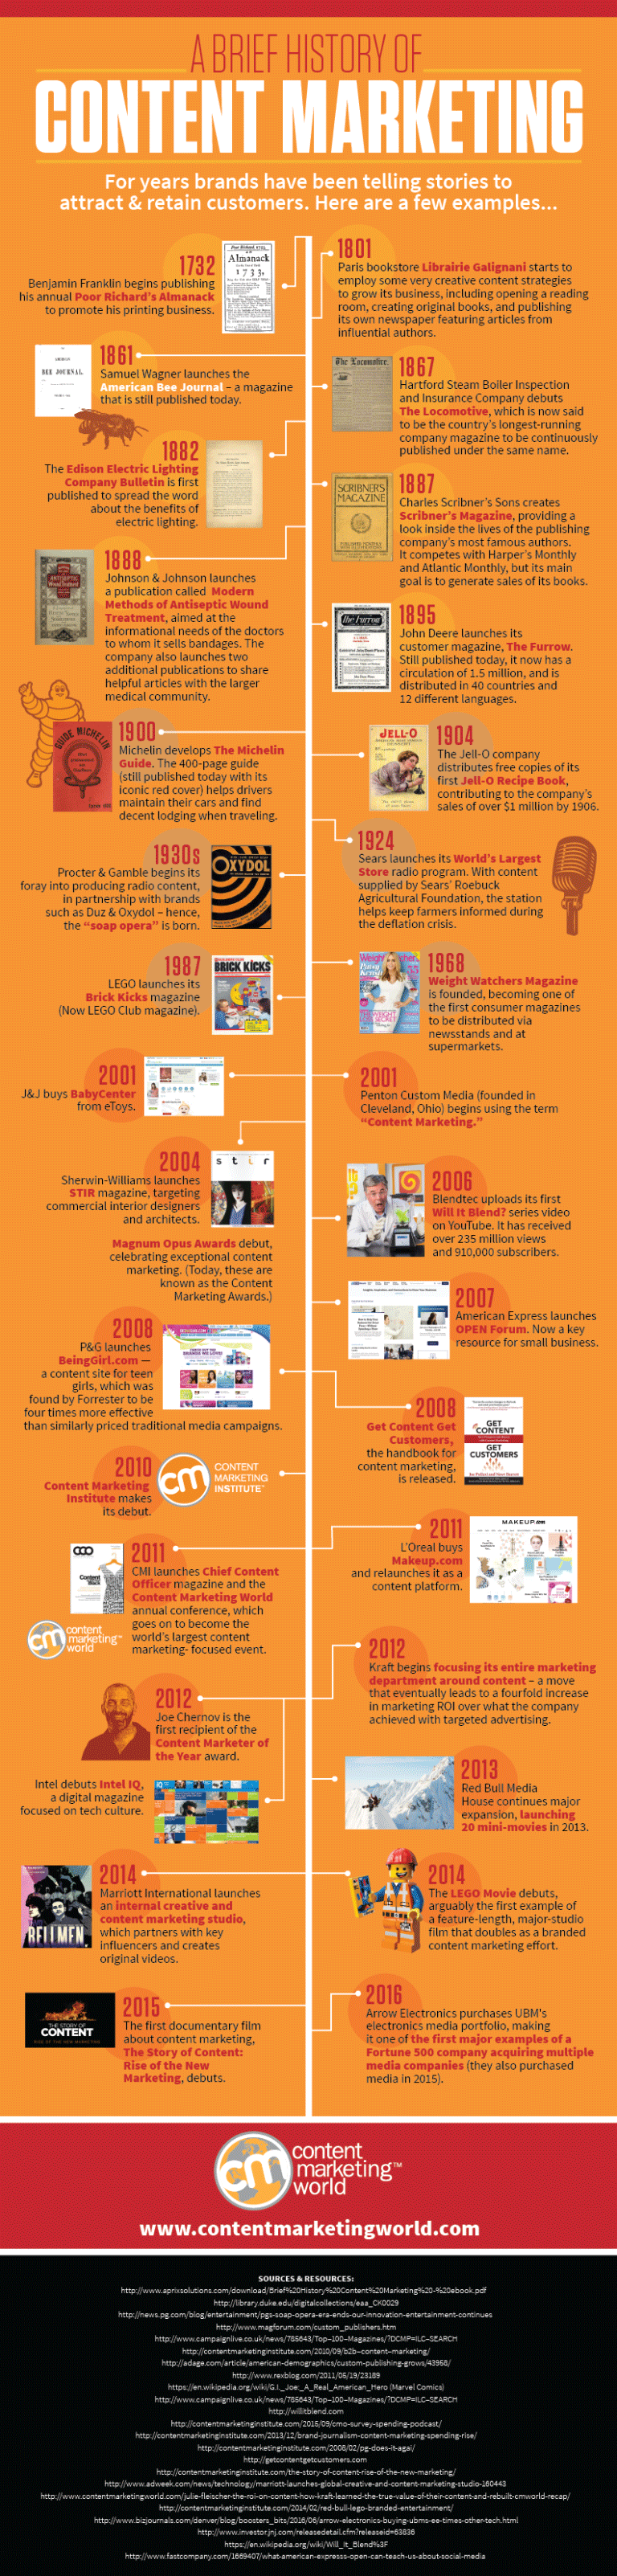 History-of-Content-Marketing-Infographic-2016_FINAL-768x3206, b2b content marketing emails